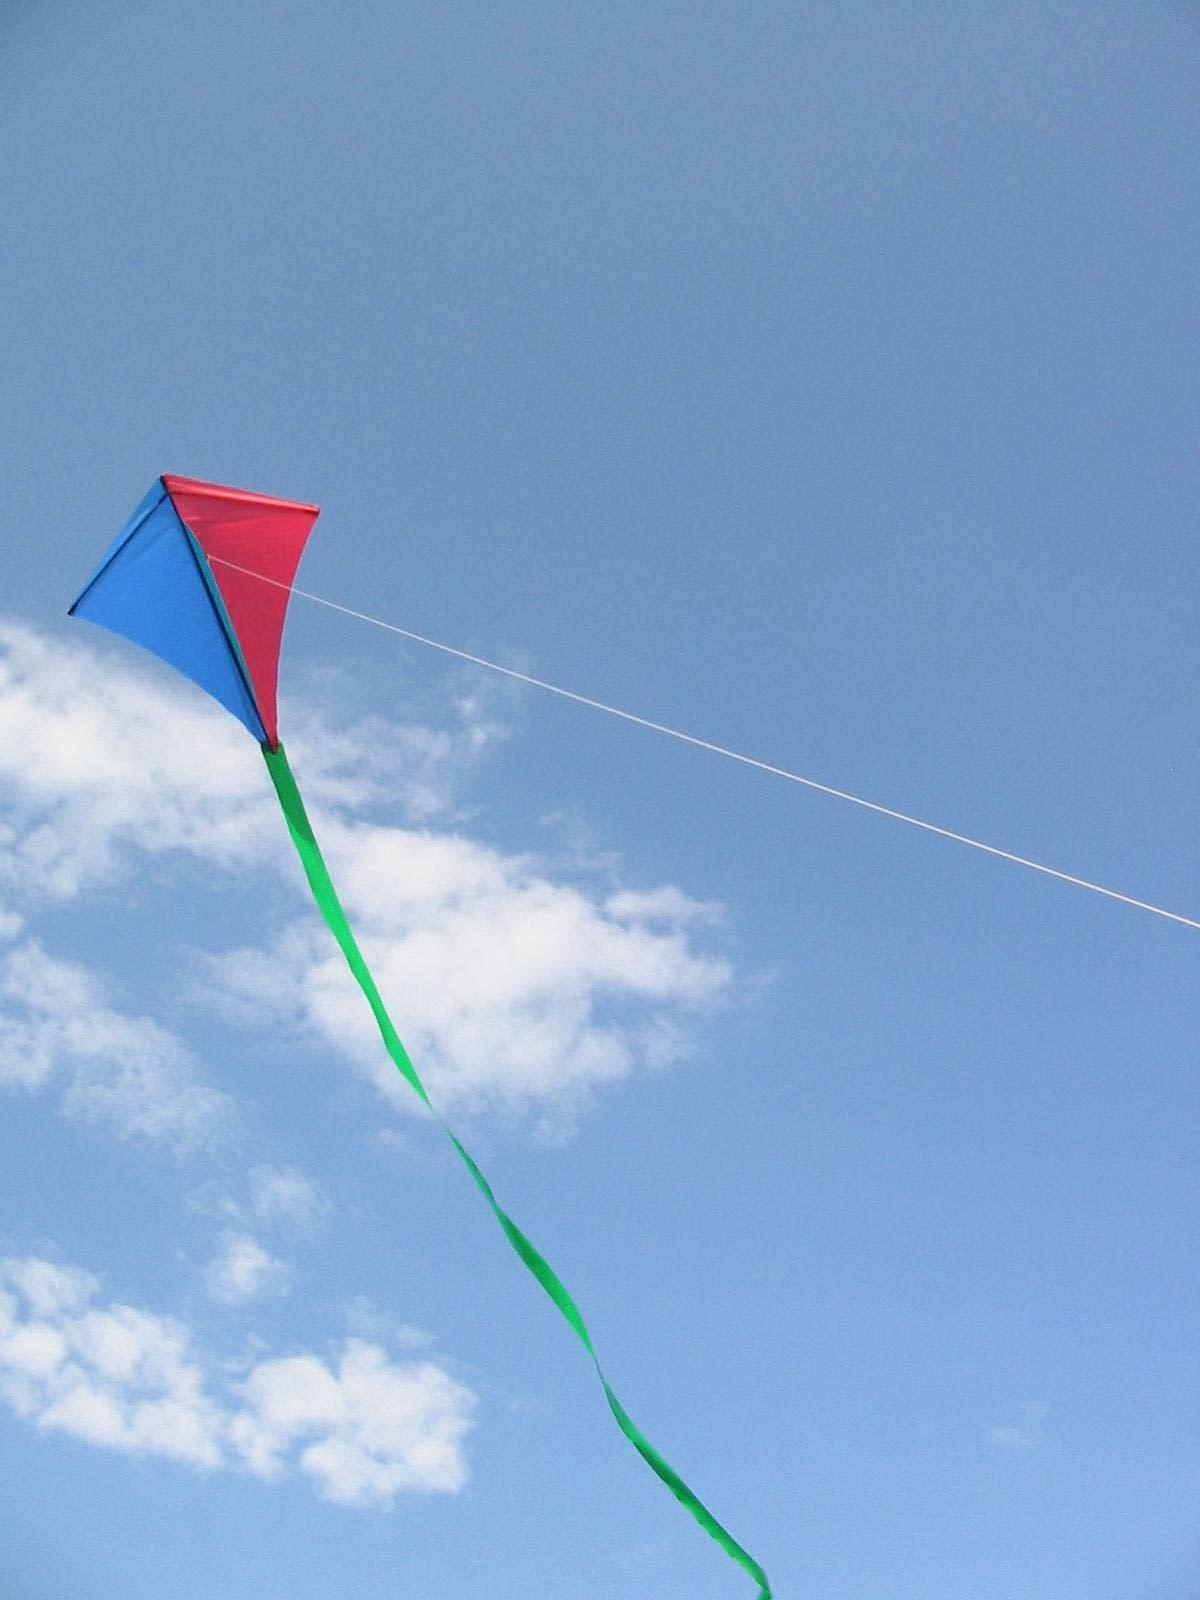 Wesleyan celebrates National Kite Day